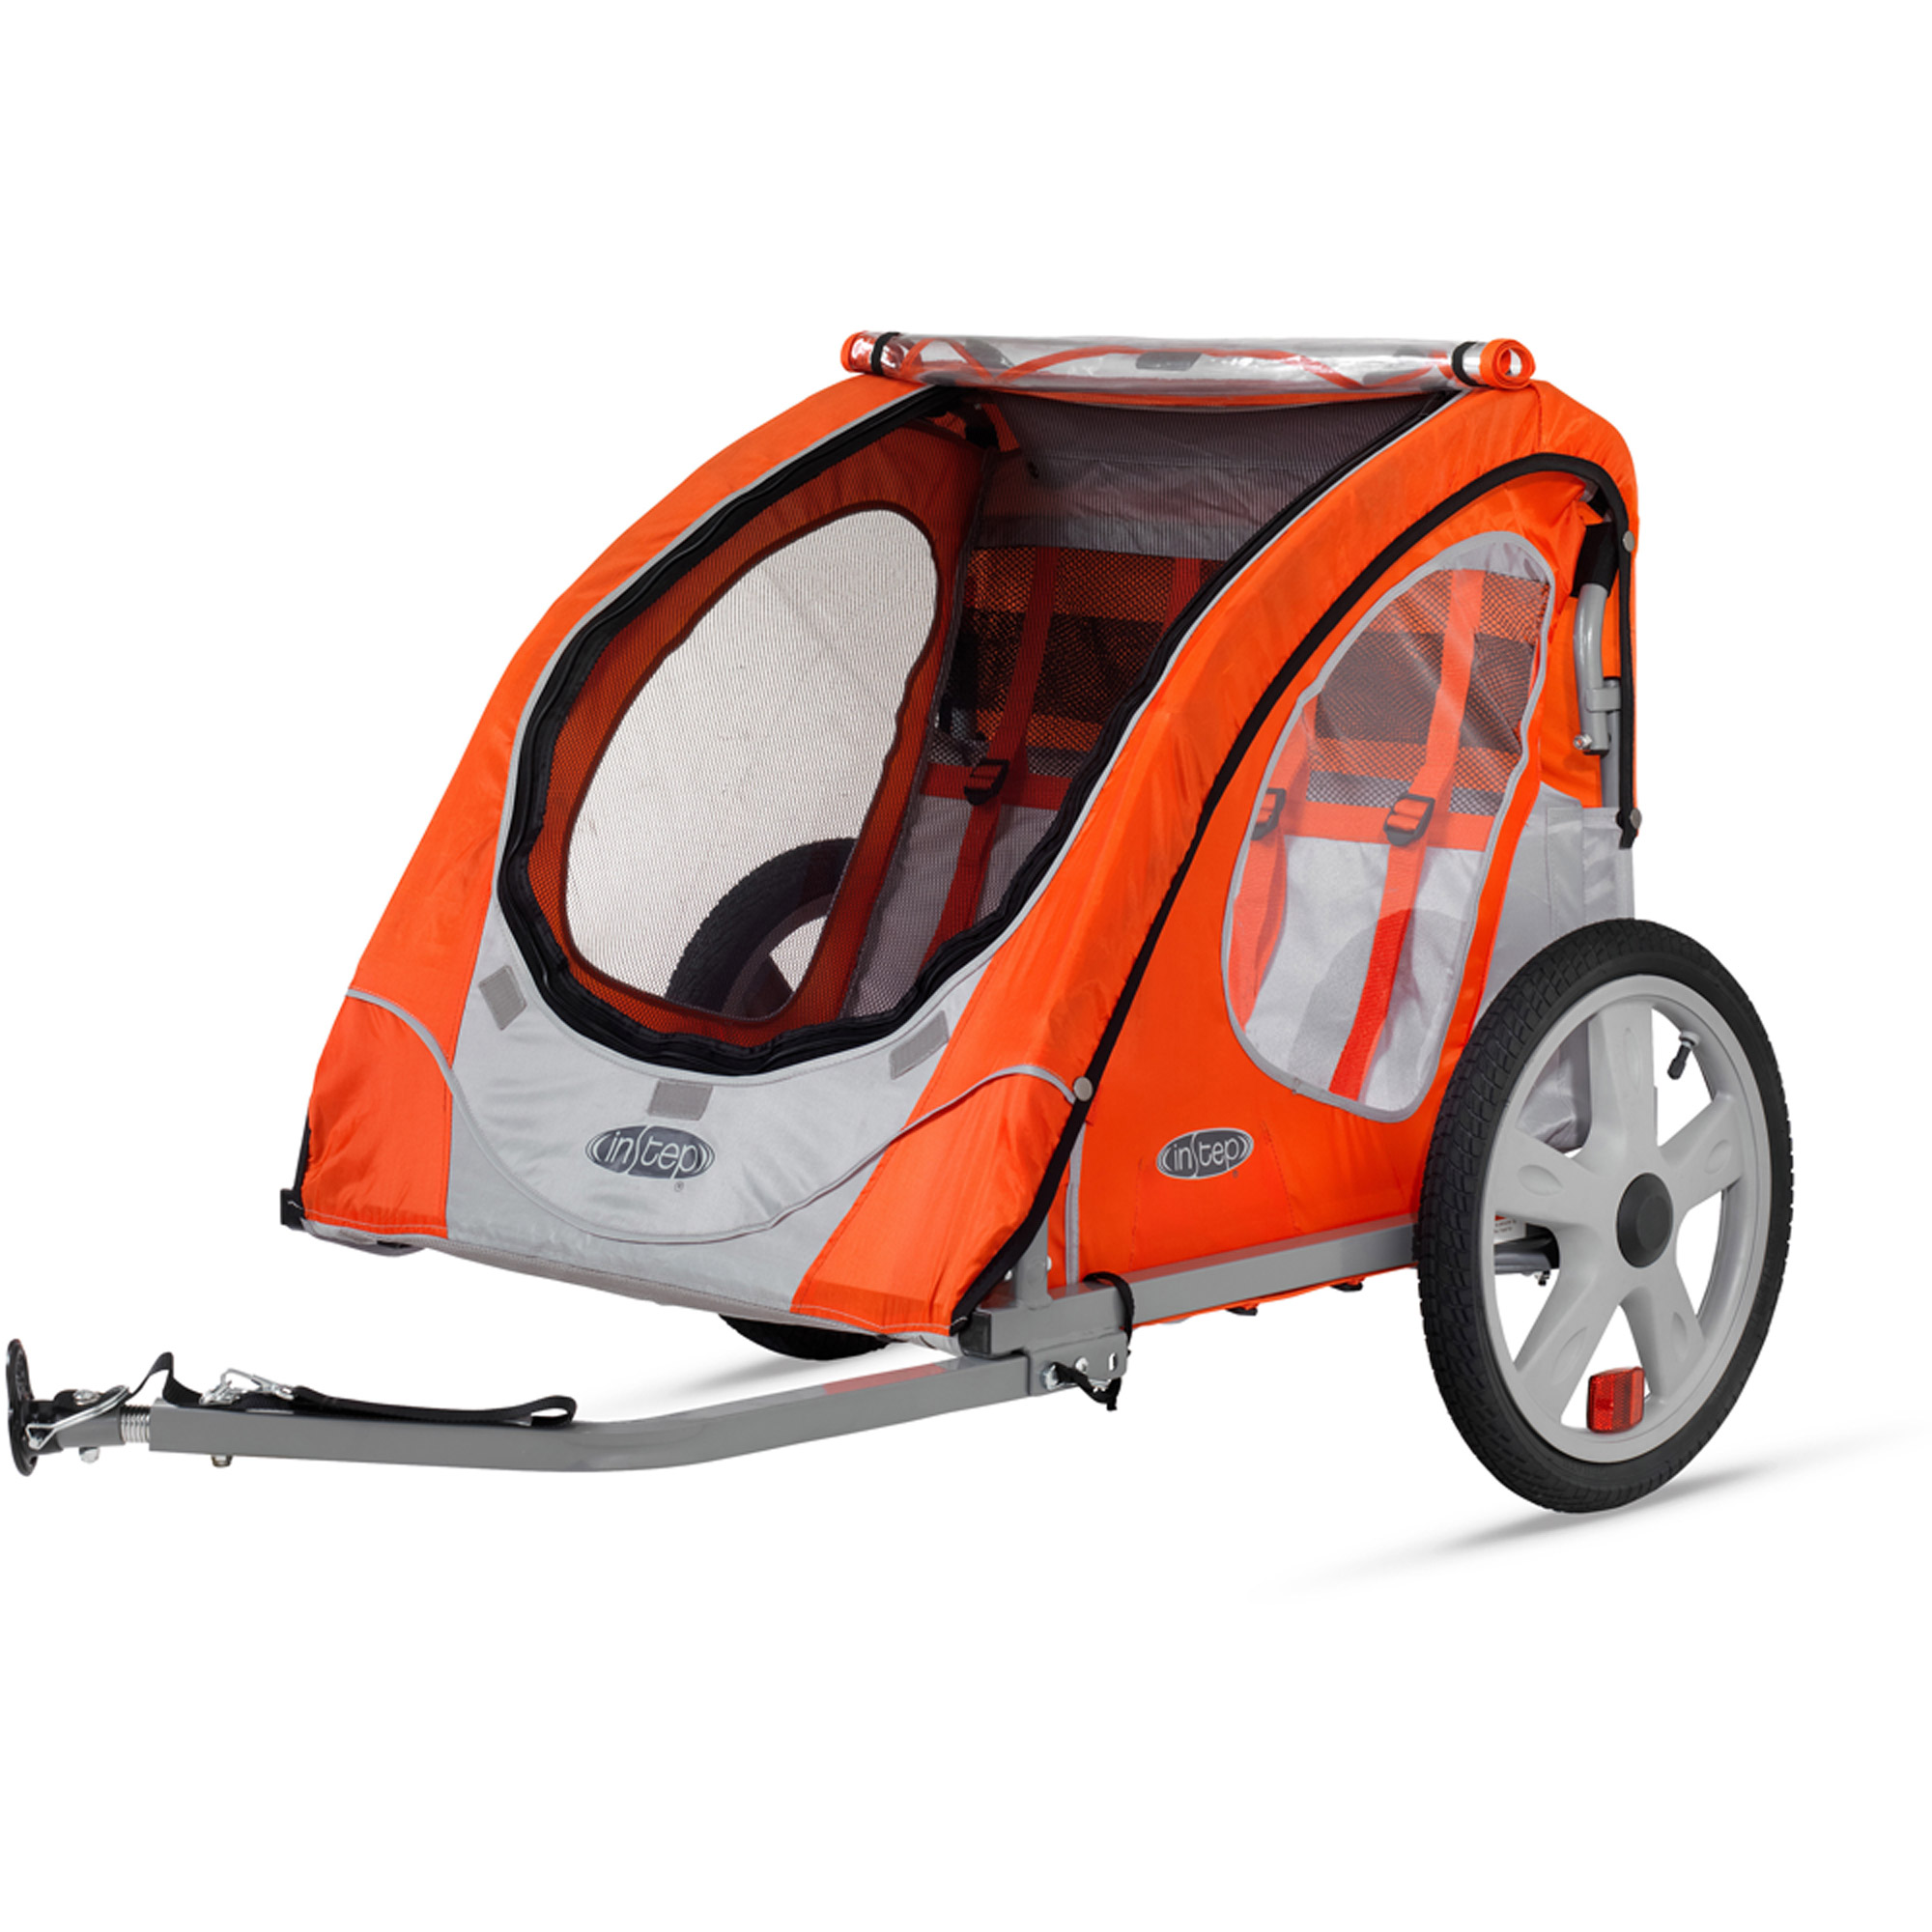 InStep Robin 2-Seater Trailer, Orange by Pacific Cycle